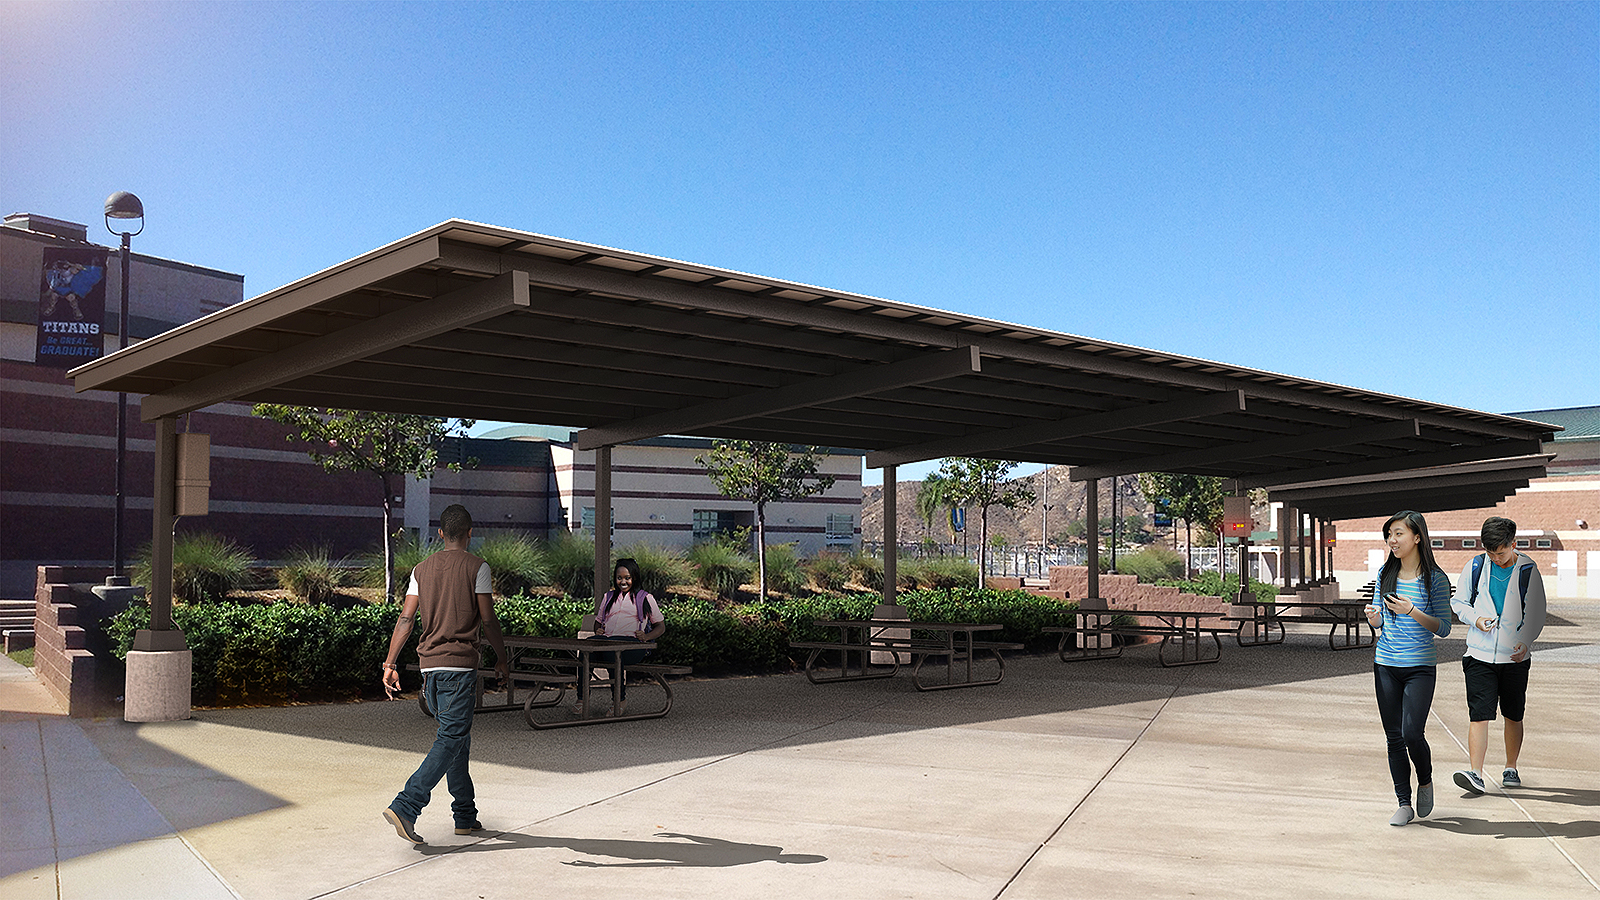 Solar Energy Structures To Help Cjusd Save 35 Million In